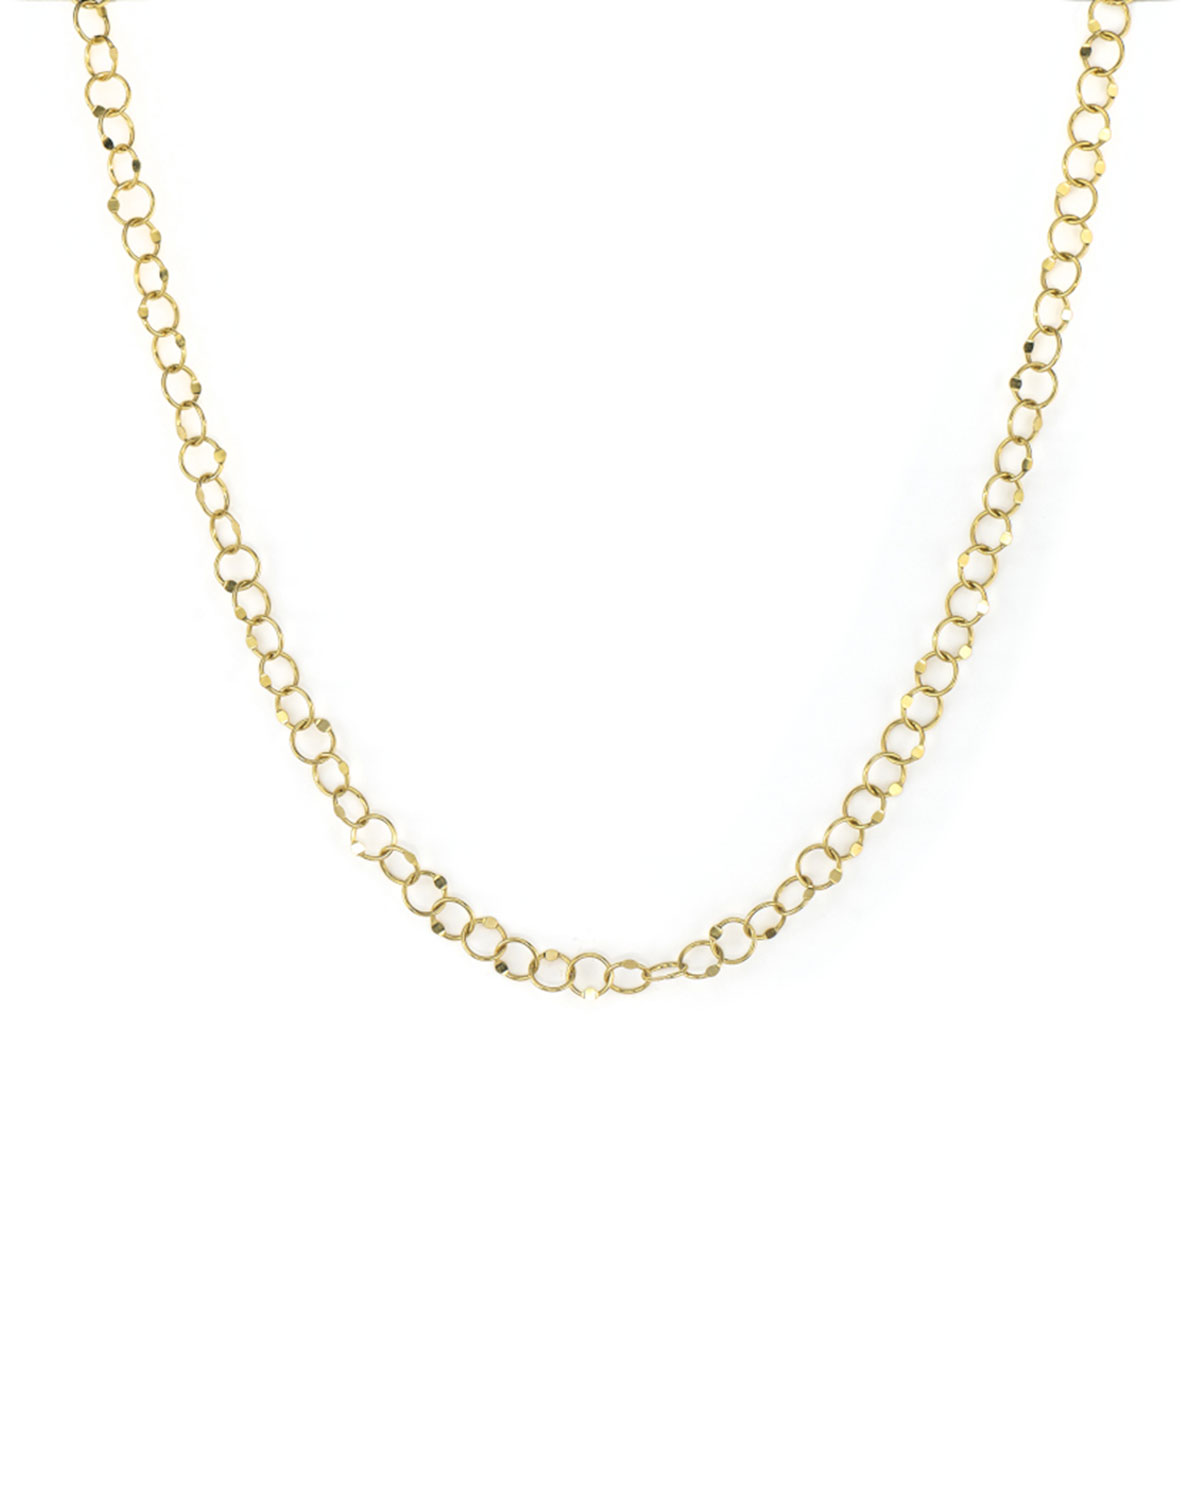 Lisse 18k Hammered Circle-Chain Necklace